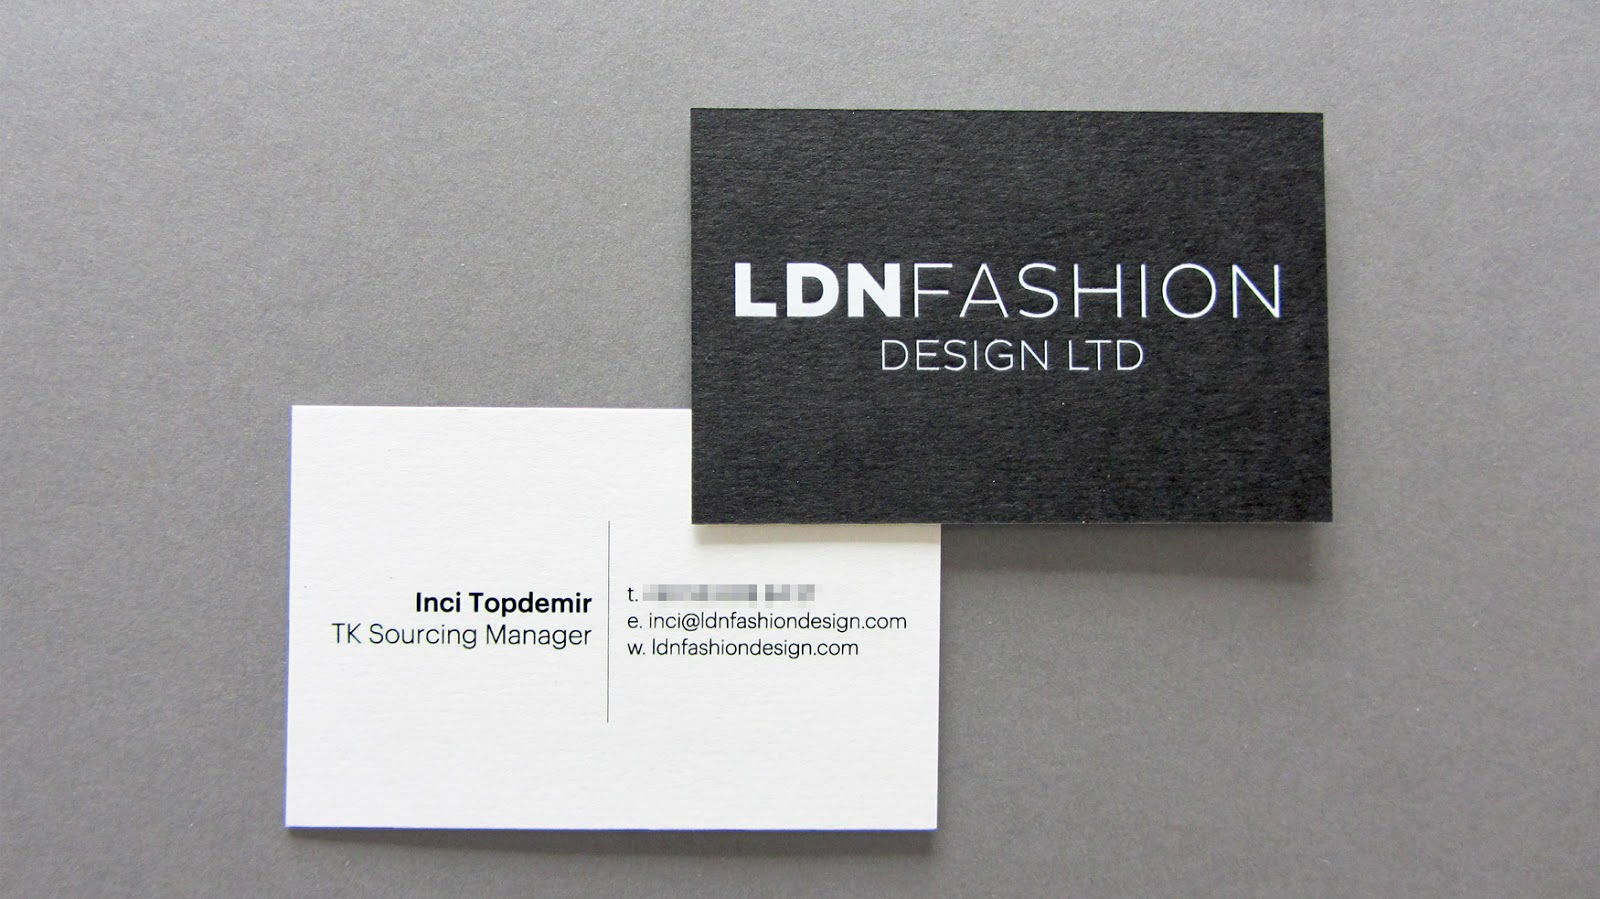 Fashion business cards business card tips fashion business cards templates free fashion designer business card templates creative business cards for colourmoves Image collections